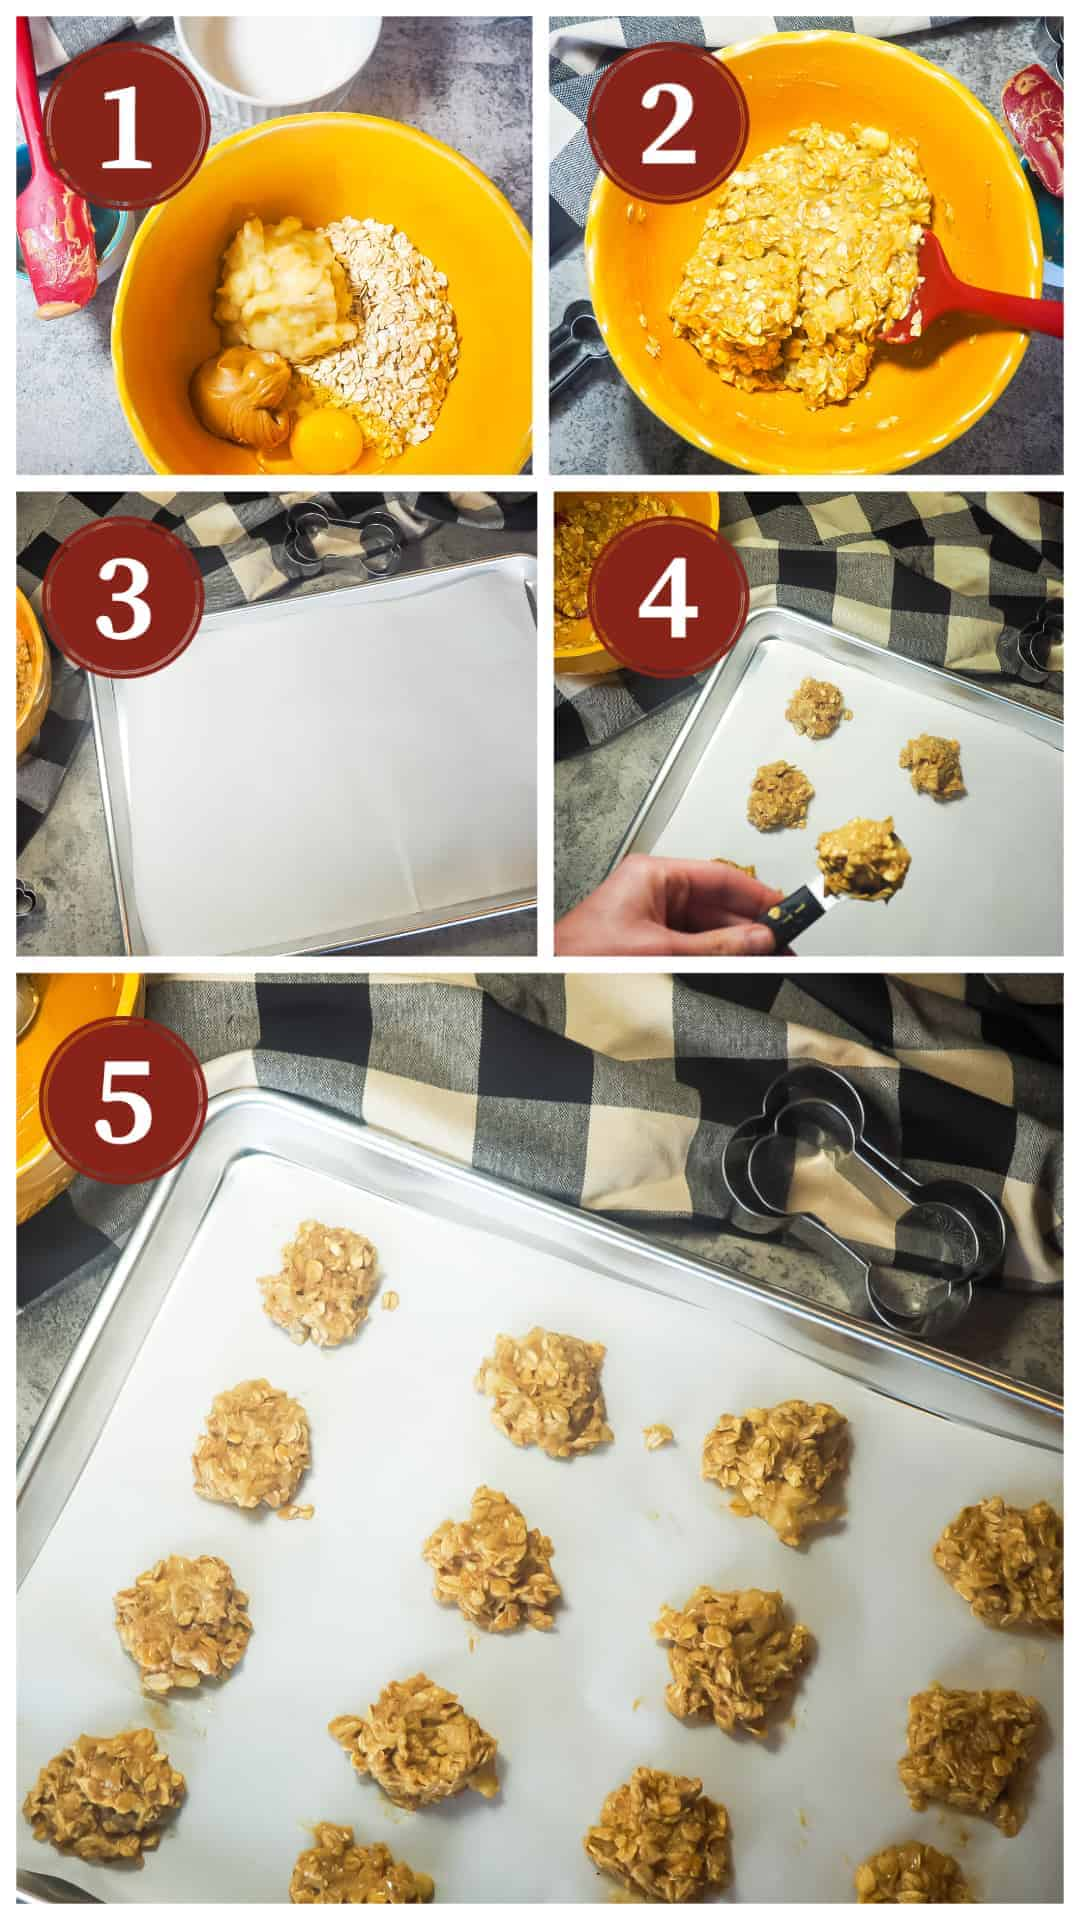 A collage of images showing the process for making homemade peanut butter and banana dog treats. Steps 1 - 5.